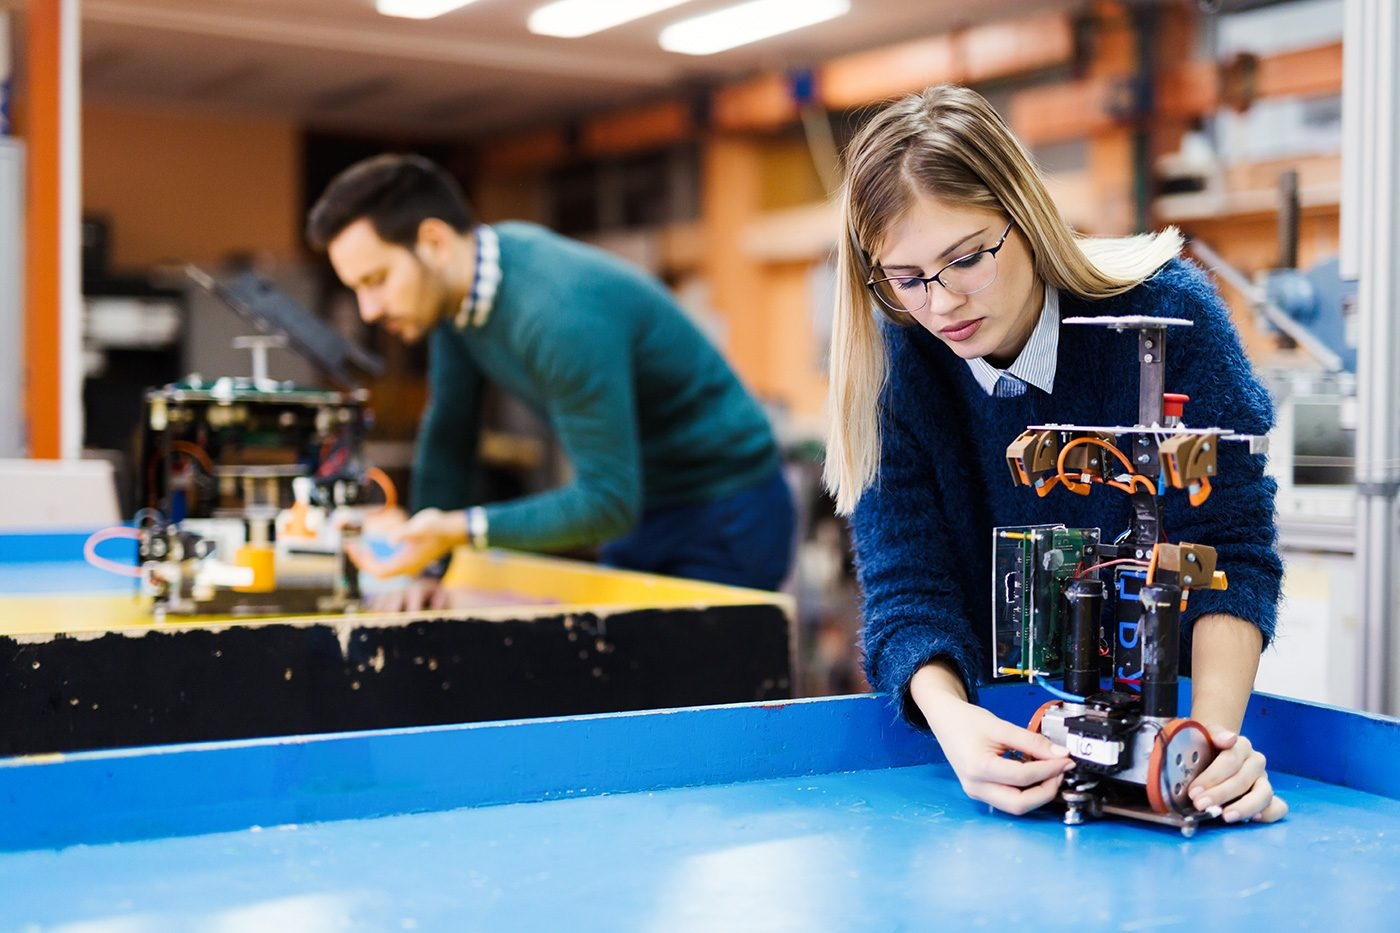 young-student-of-robotics-working-on-project-S32GWUC